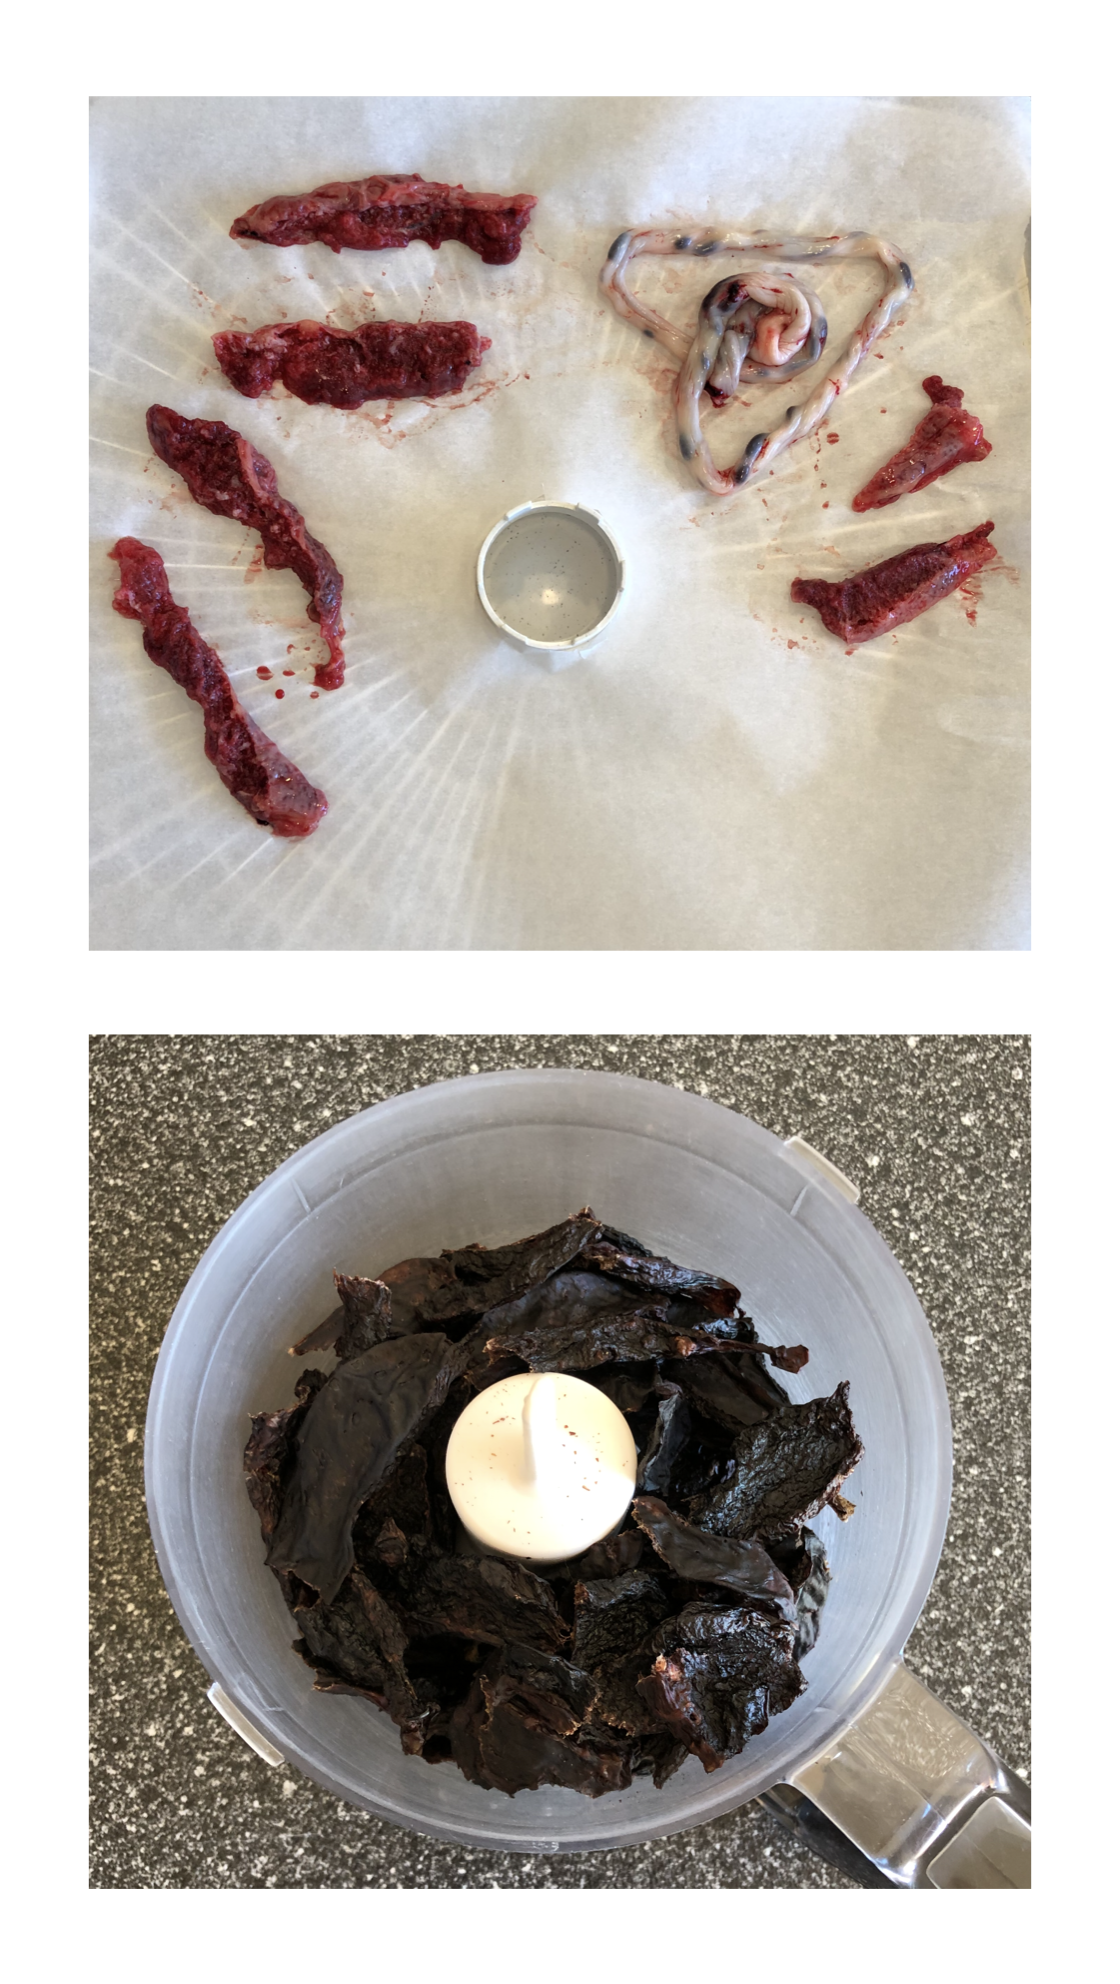 Top: raw placenta strips and an umbilical cord go into the dehydrator  Bottom: dehydrated placenta strips come out and are ready to be ground to powder